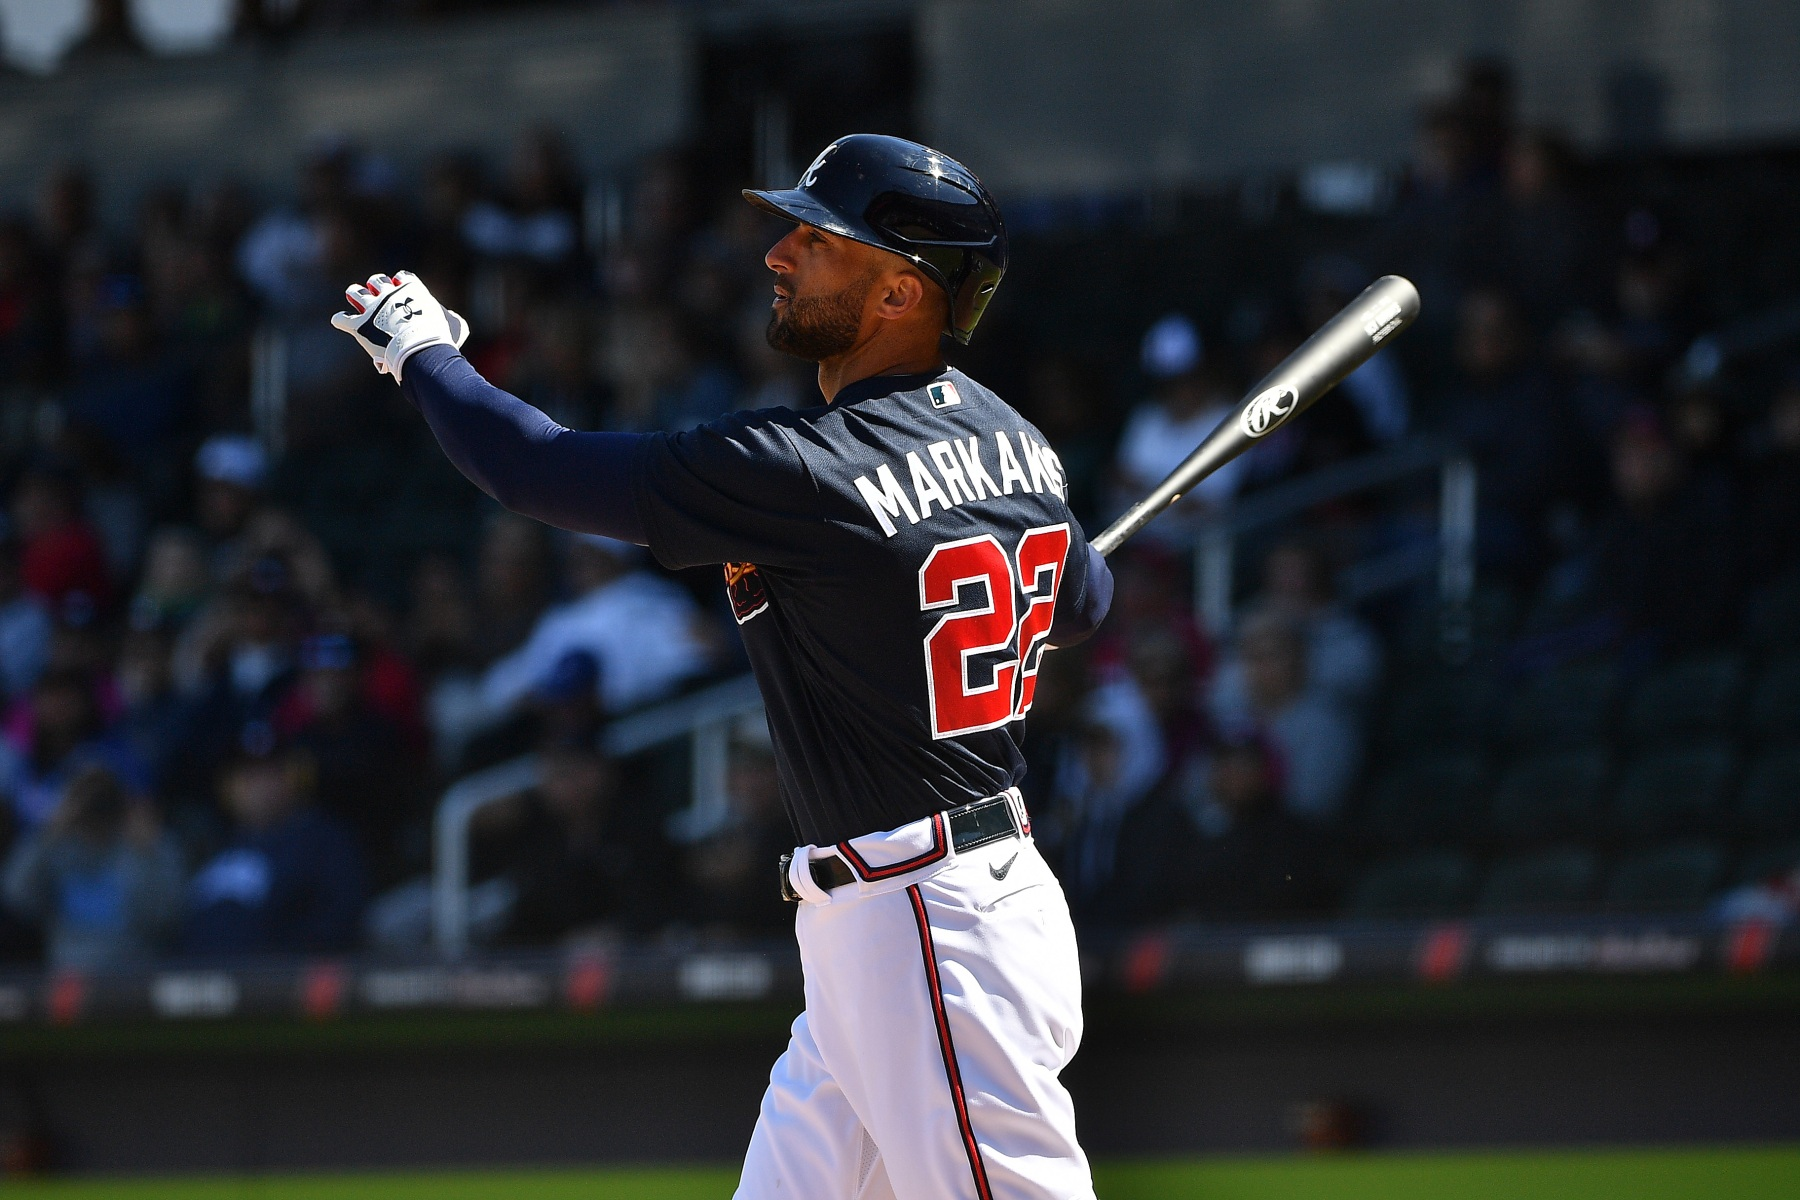 Braves Player Bows Out of MLB Season After Talking to Sick Teammate